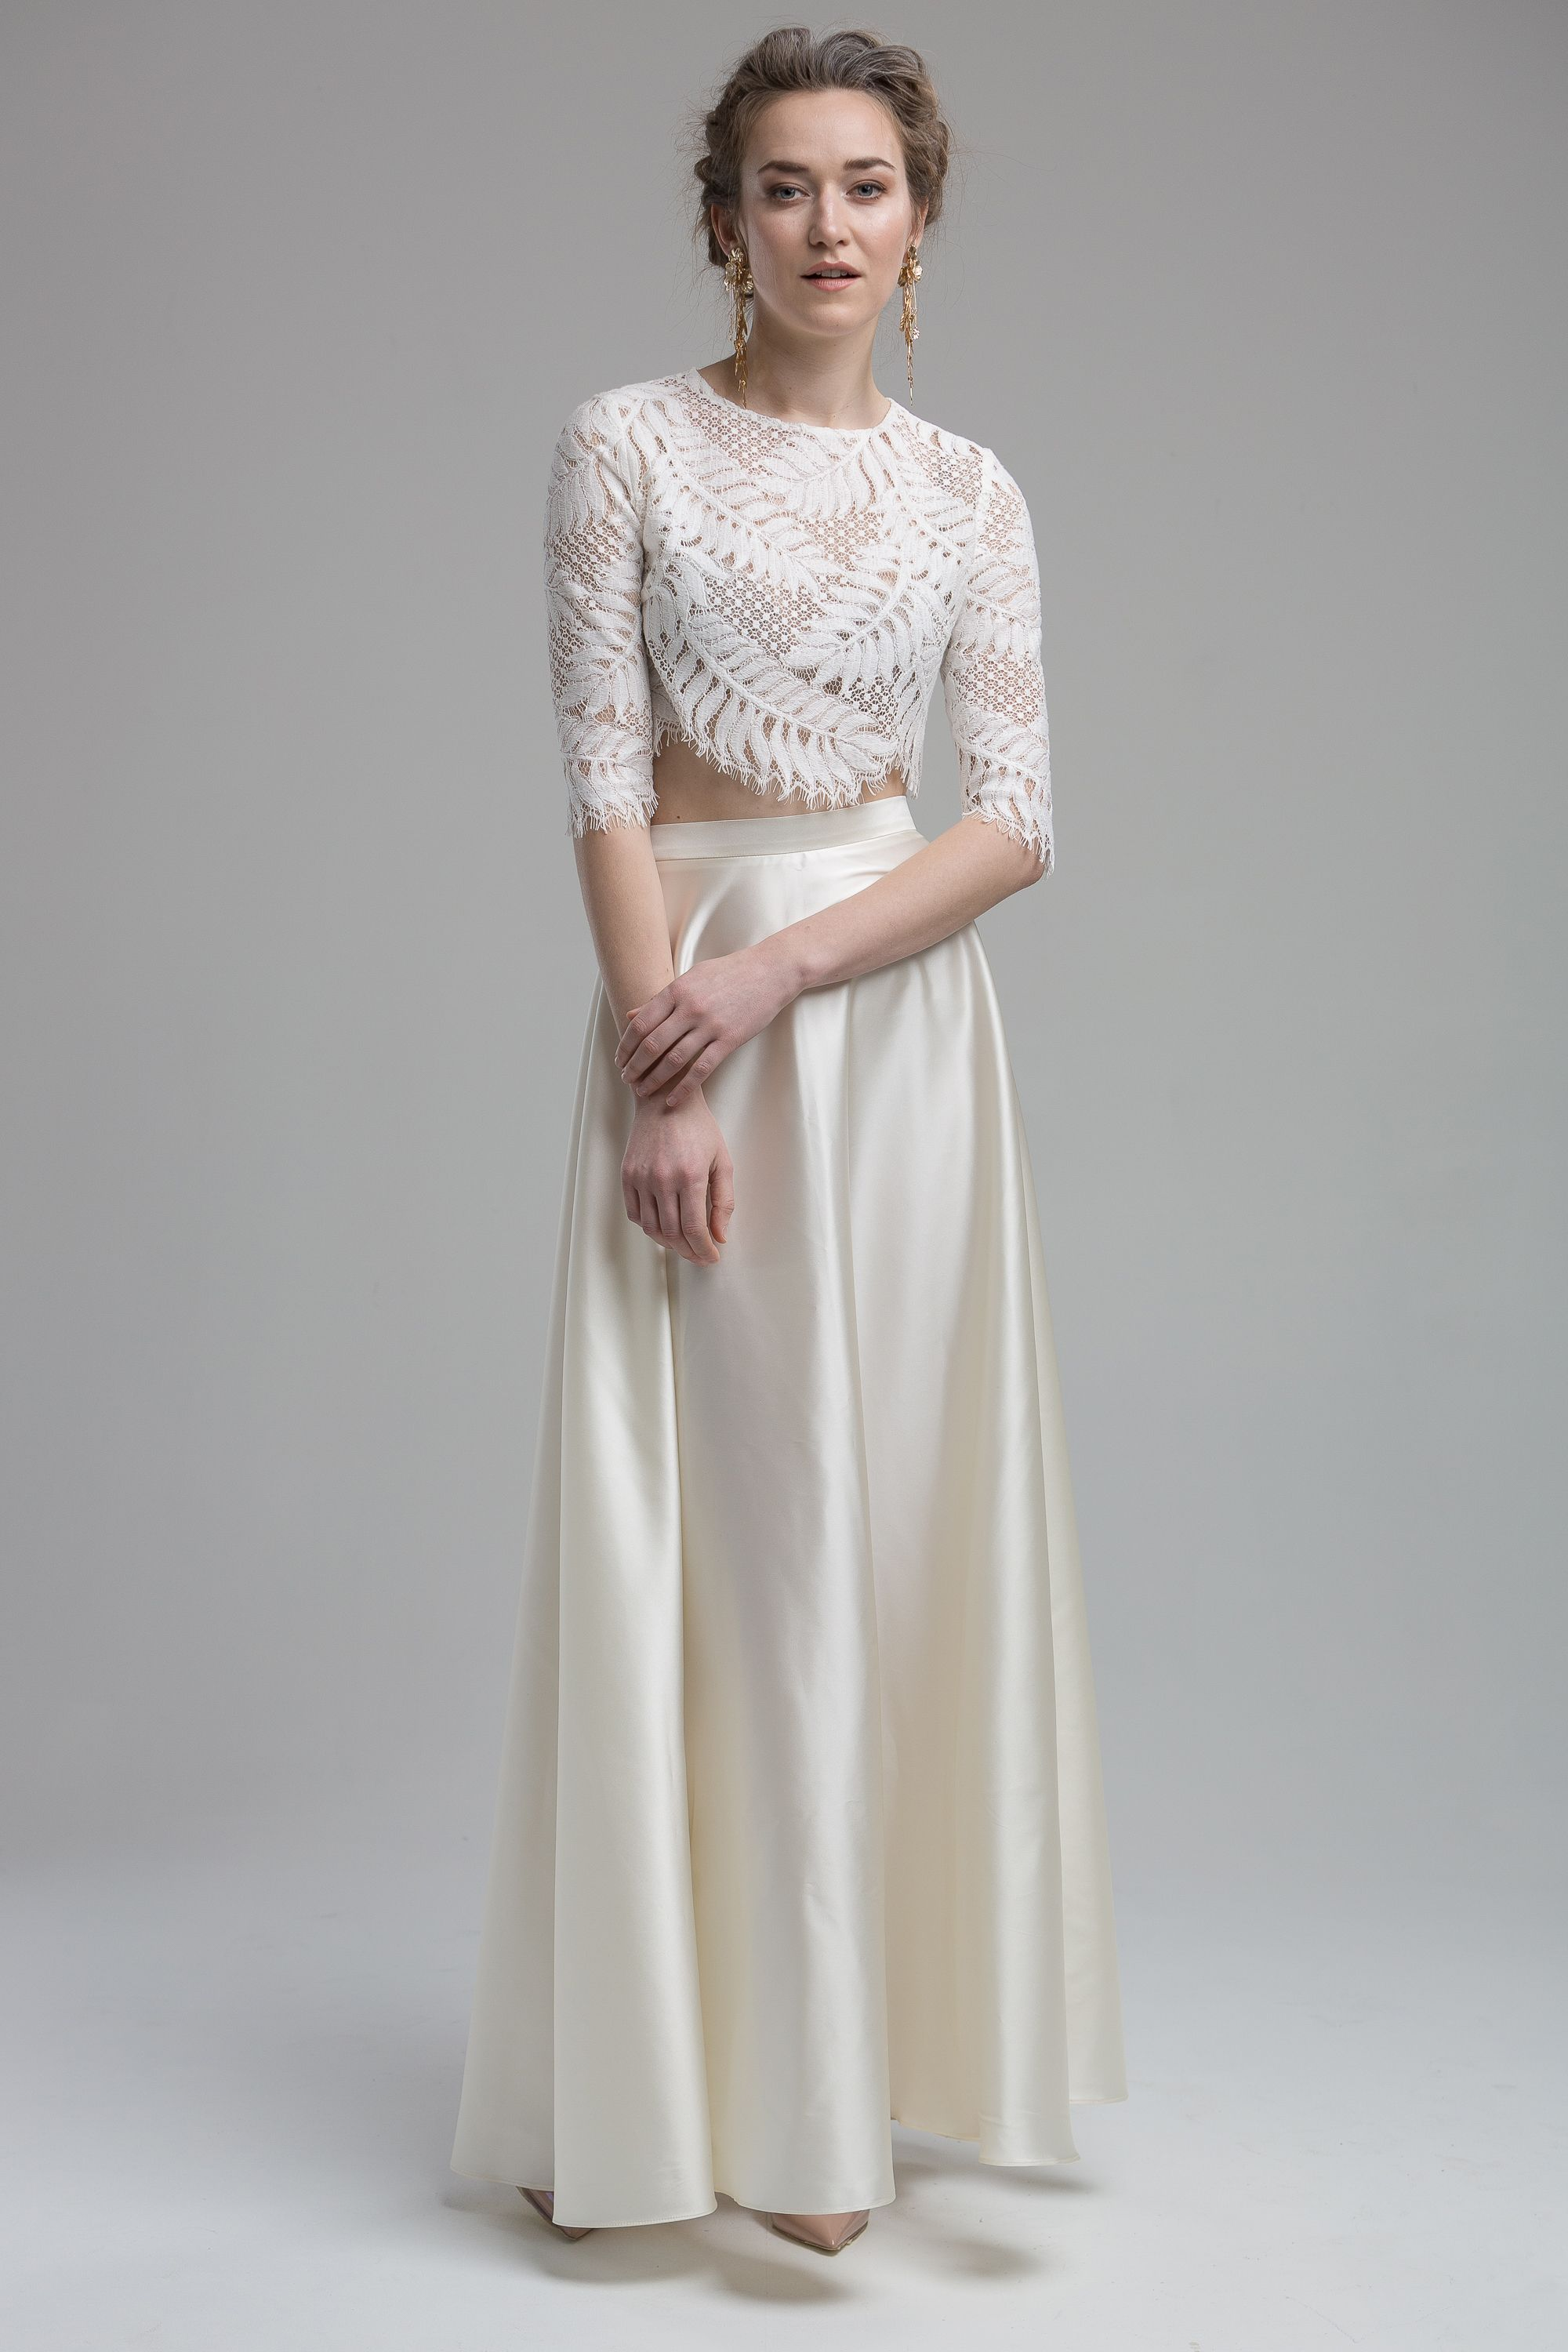 417b2cb261 London based designer label that offers a unique selection of feminine  bridal and womenswear pieces from Katya Shehurina